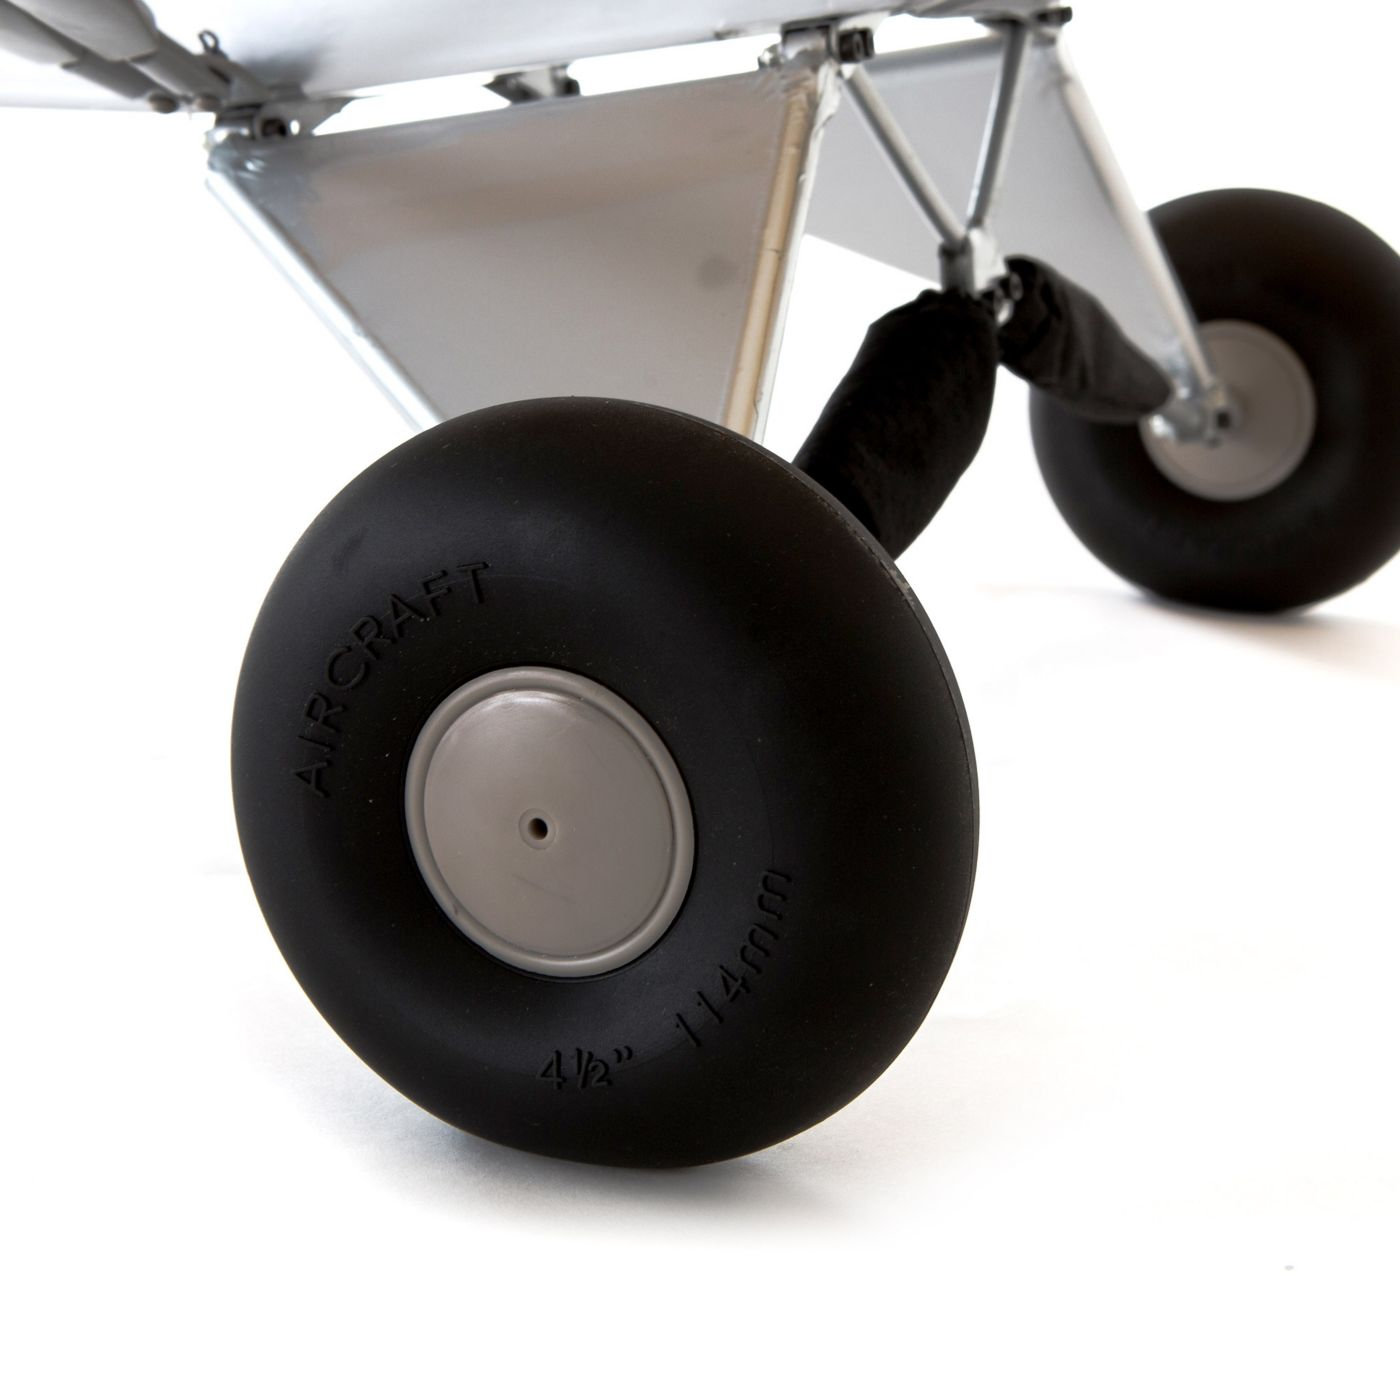 Hangar 9 Carbon Cub RC Airplane: Landing gear.